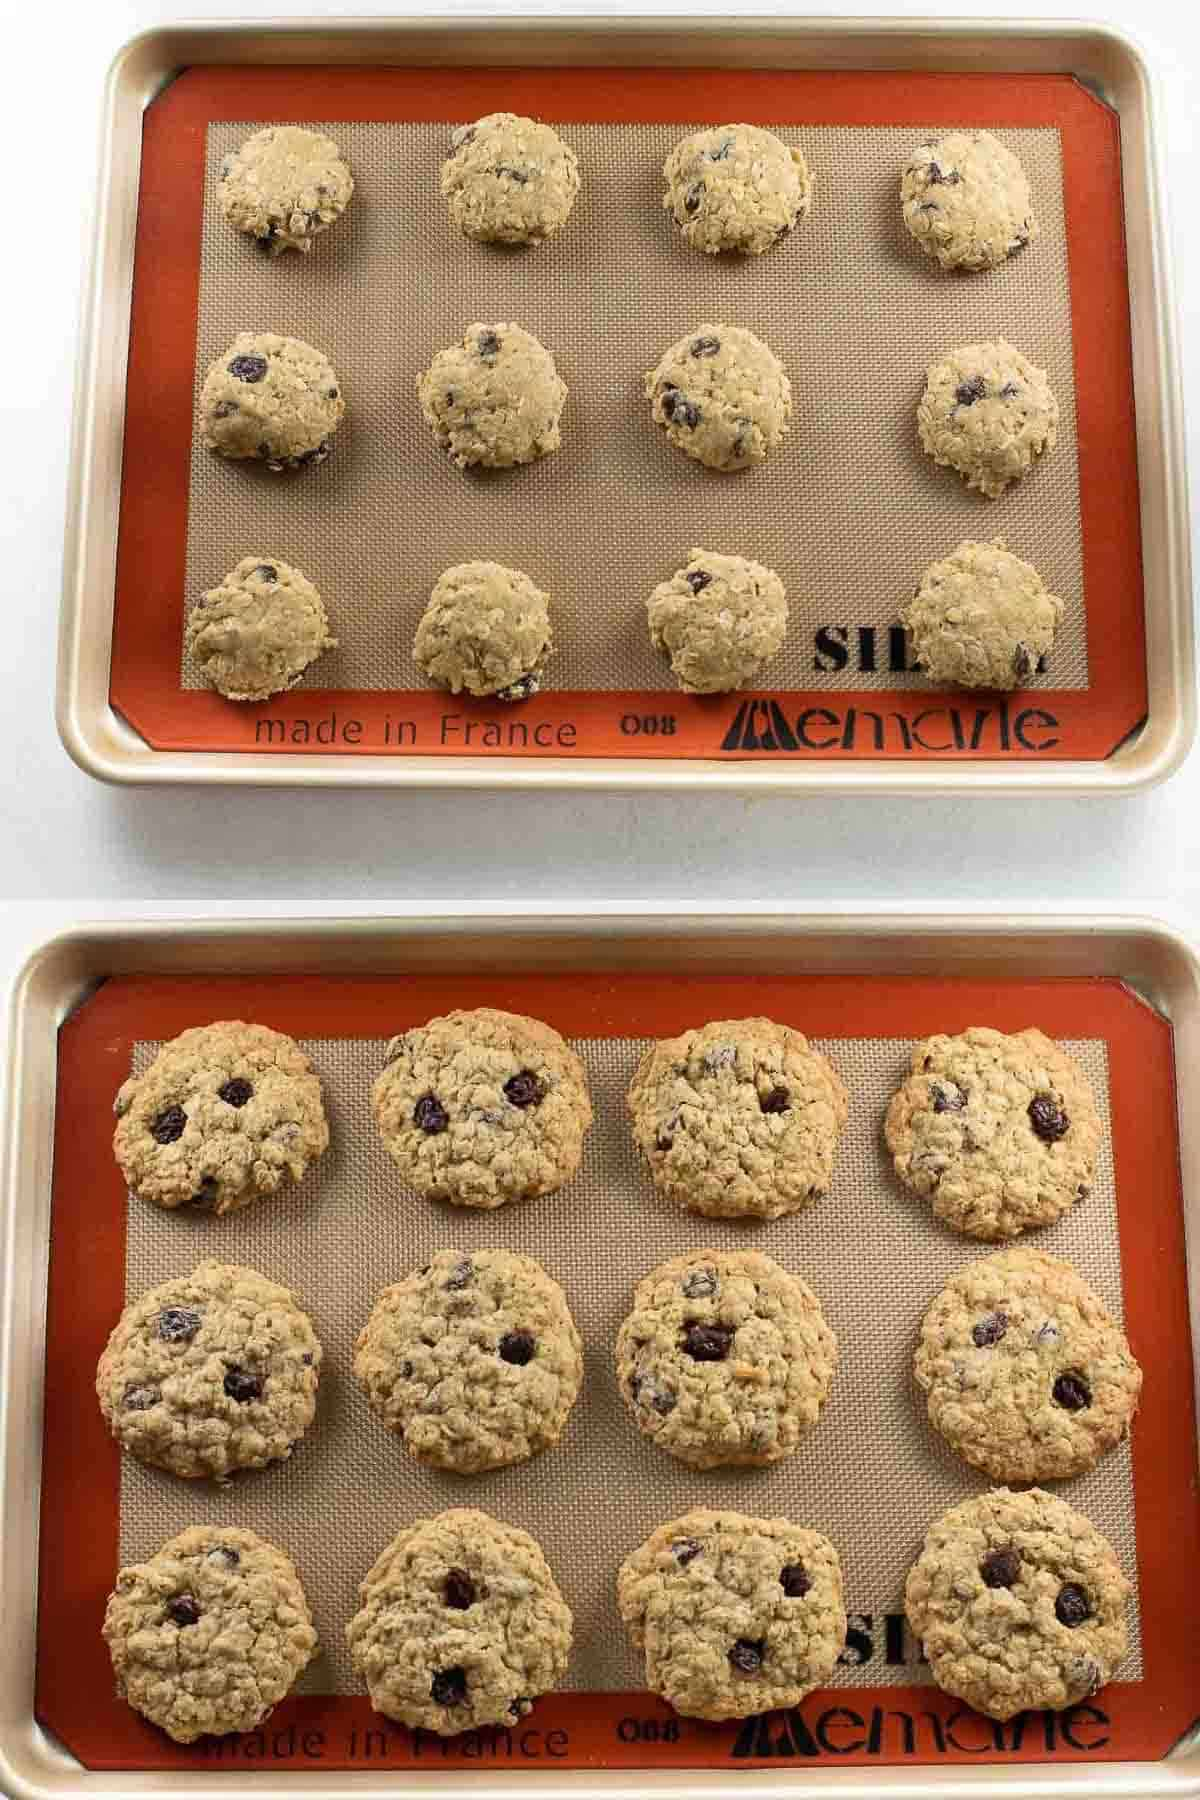 cookie dough scooped onto baking sheet then tray of baked cookies